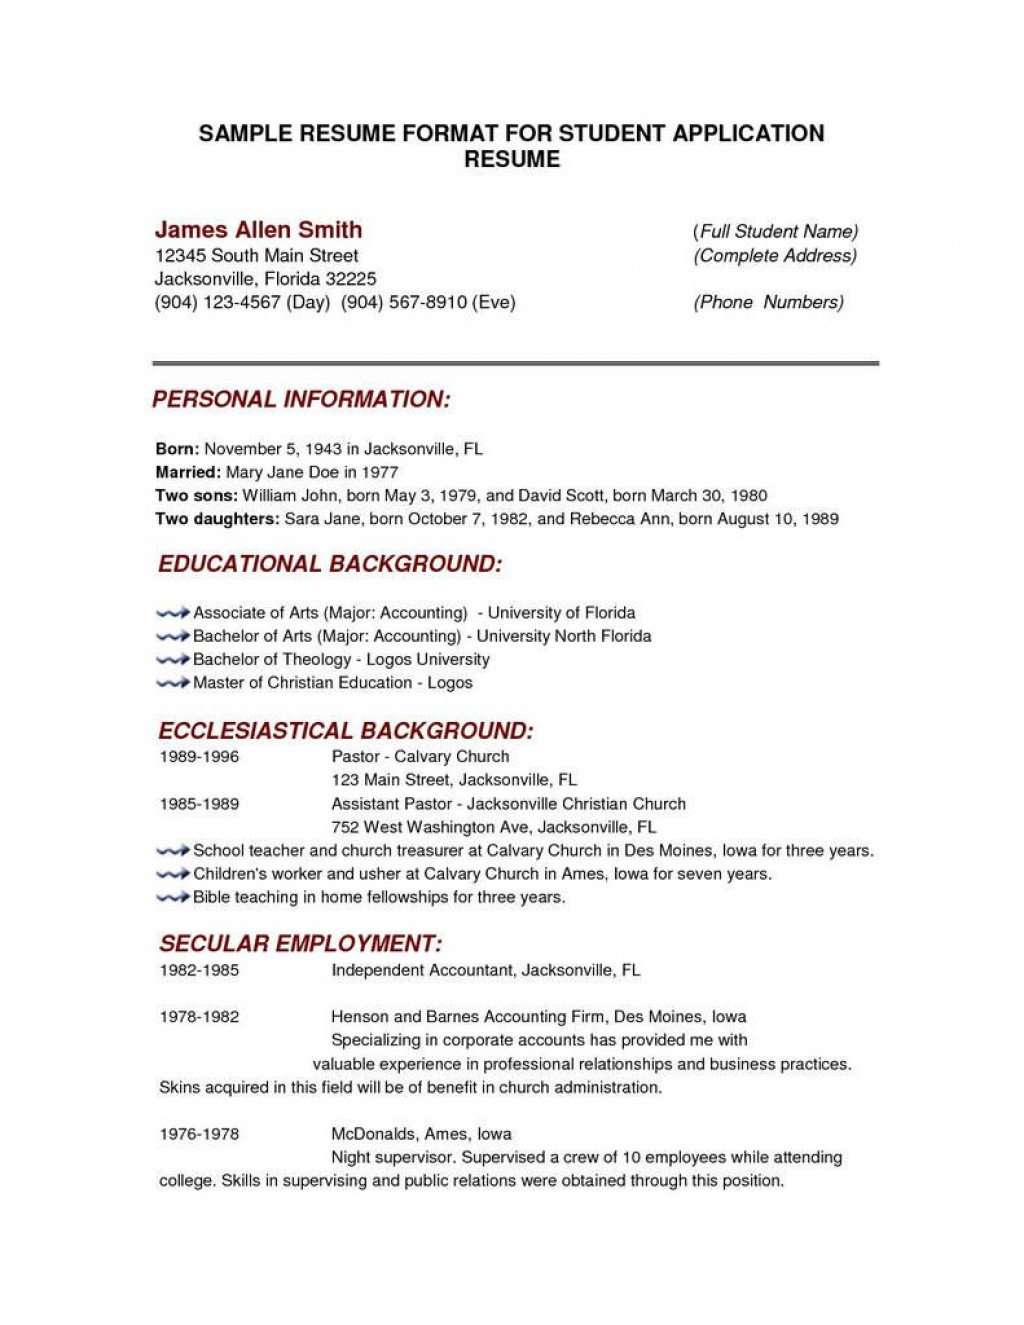 008 Exceptional Grad School Resume Template Image  Application Cv Graduate For AdmissionLarge